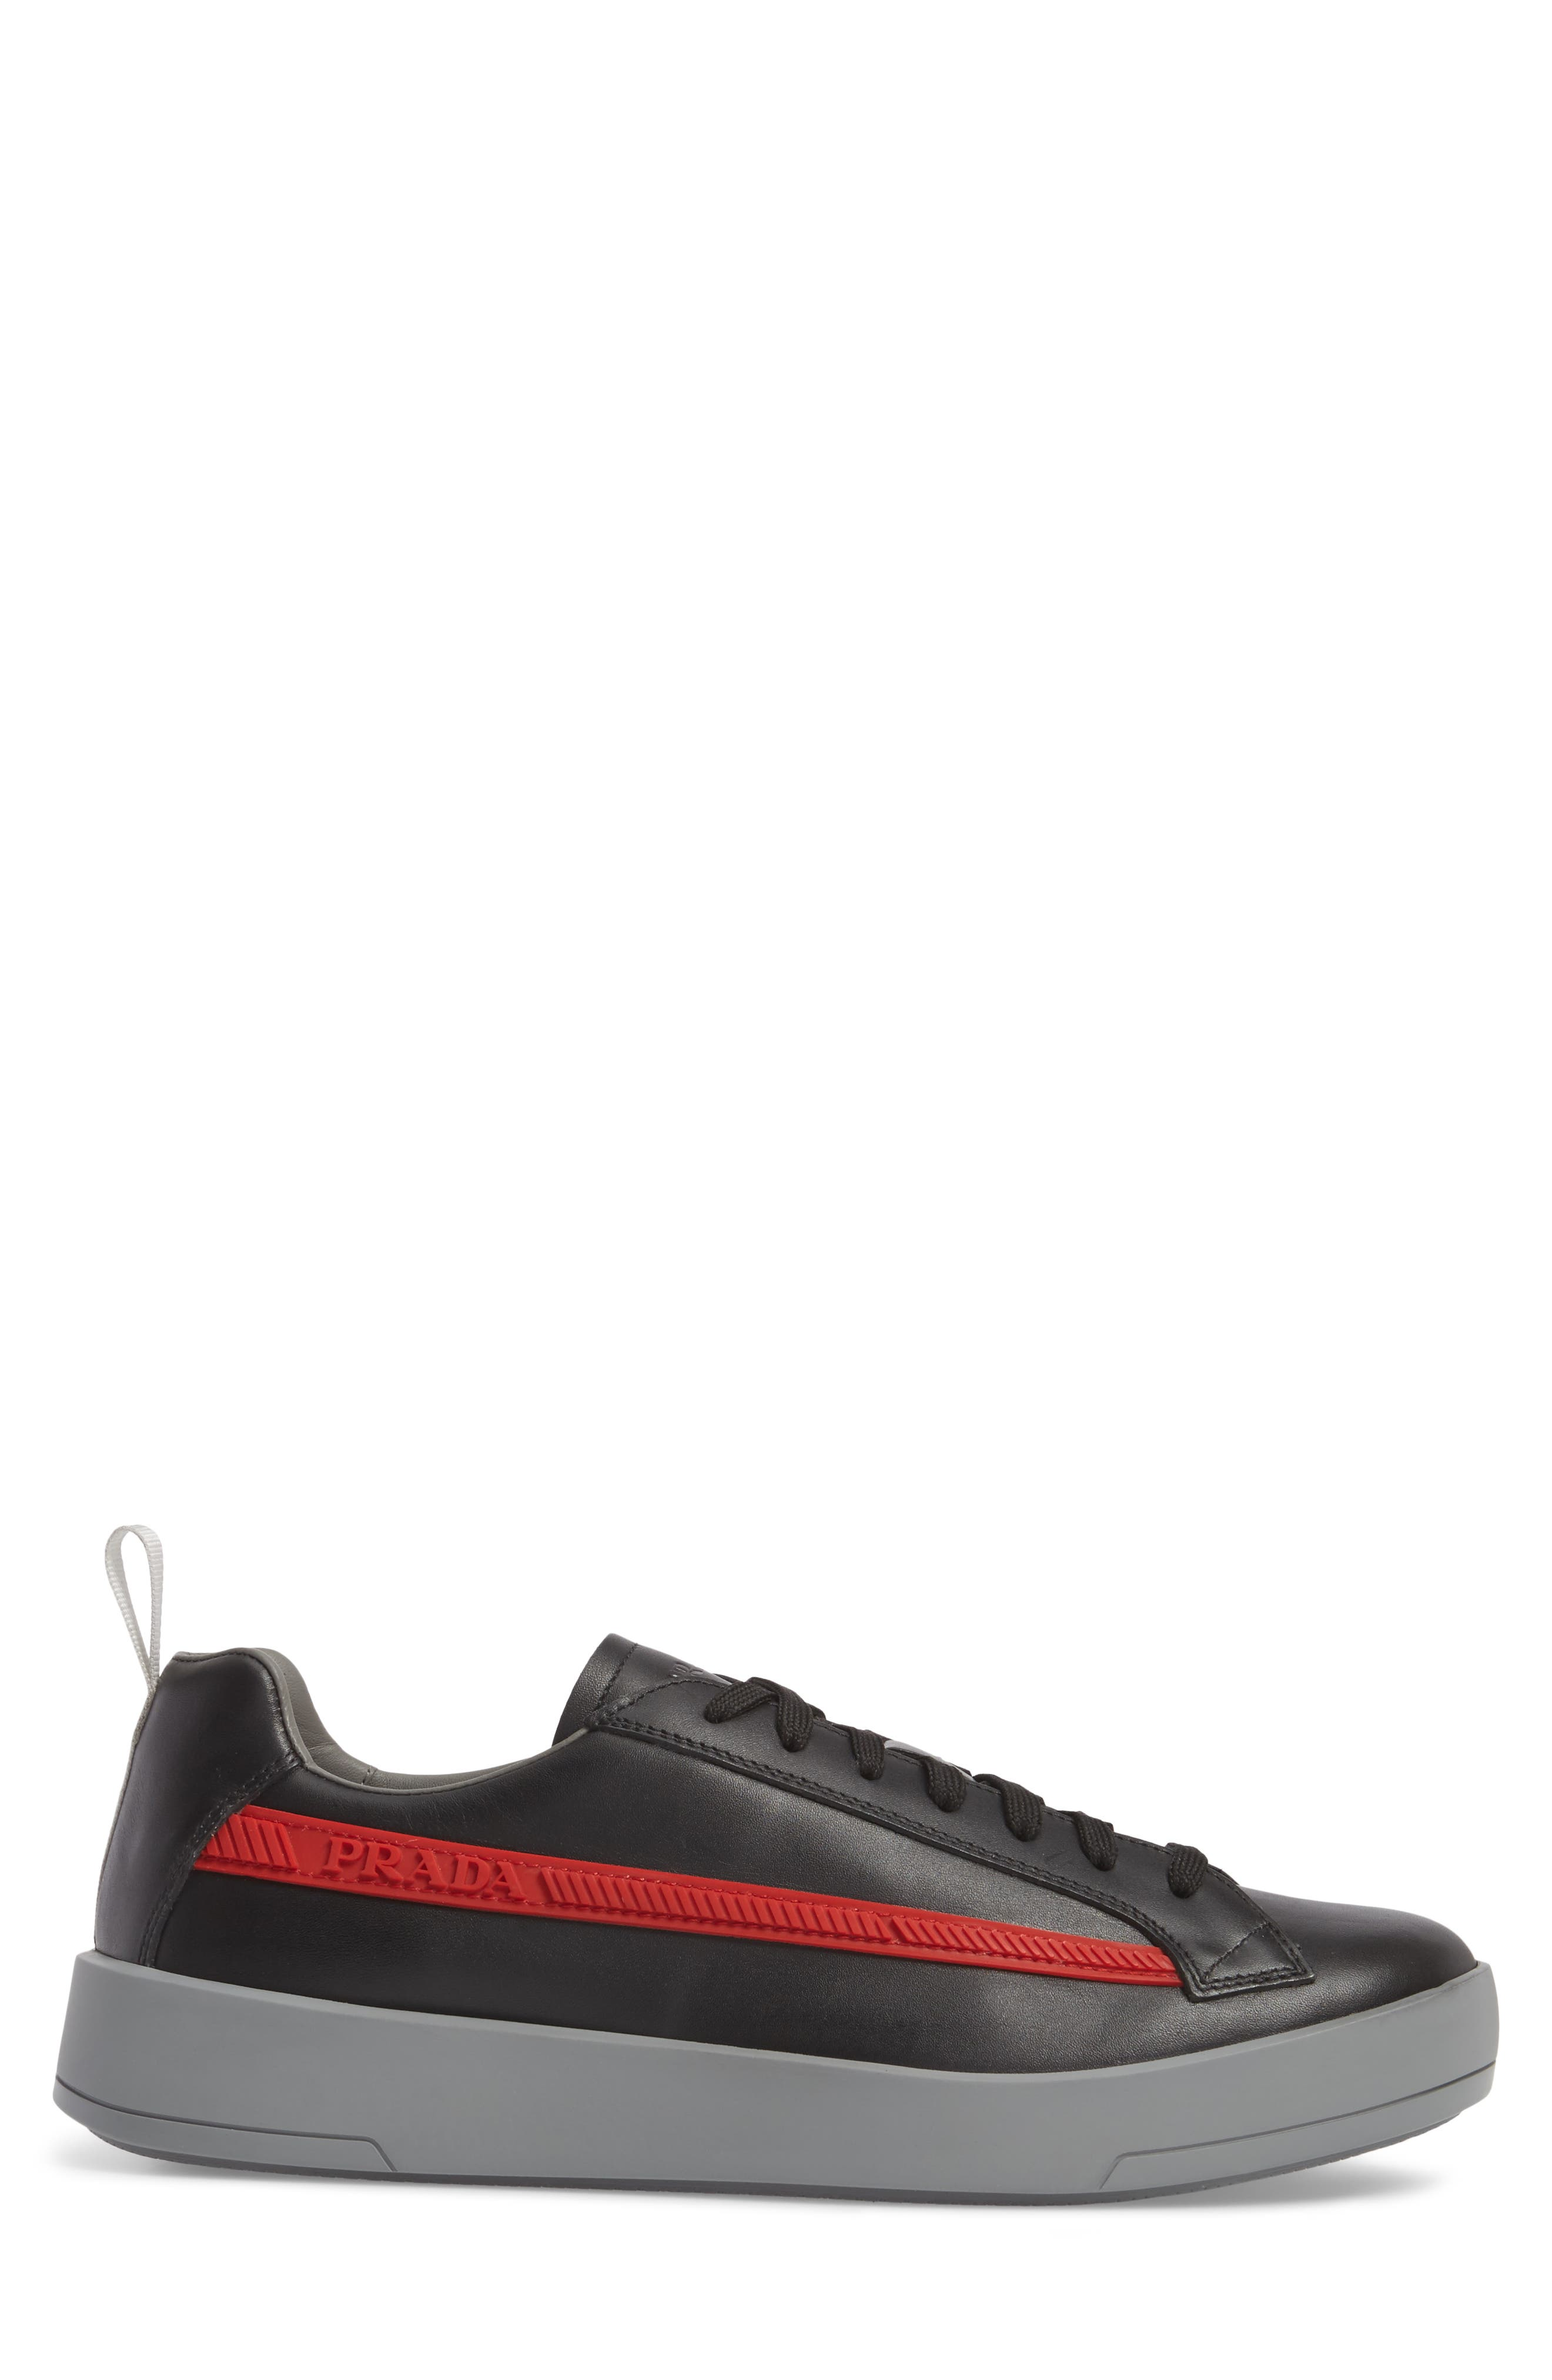 Linea Rossa Sneaker,                             Alternate thumbnail 3, color,                             Nero Bianco